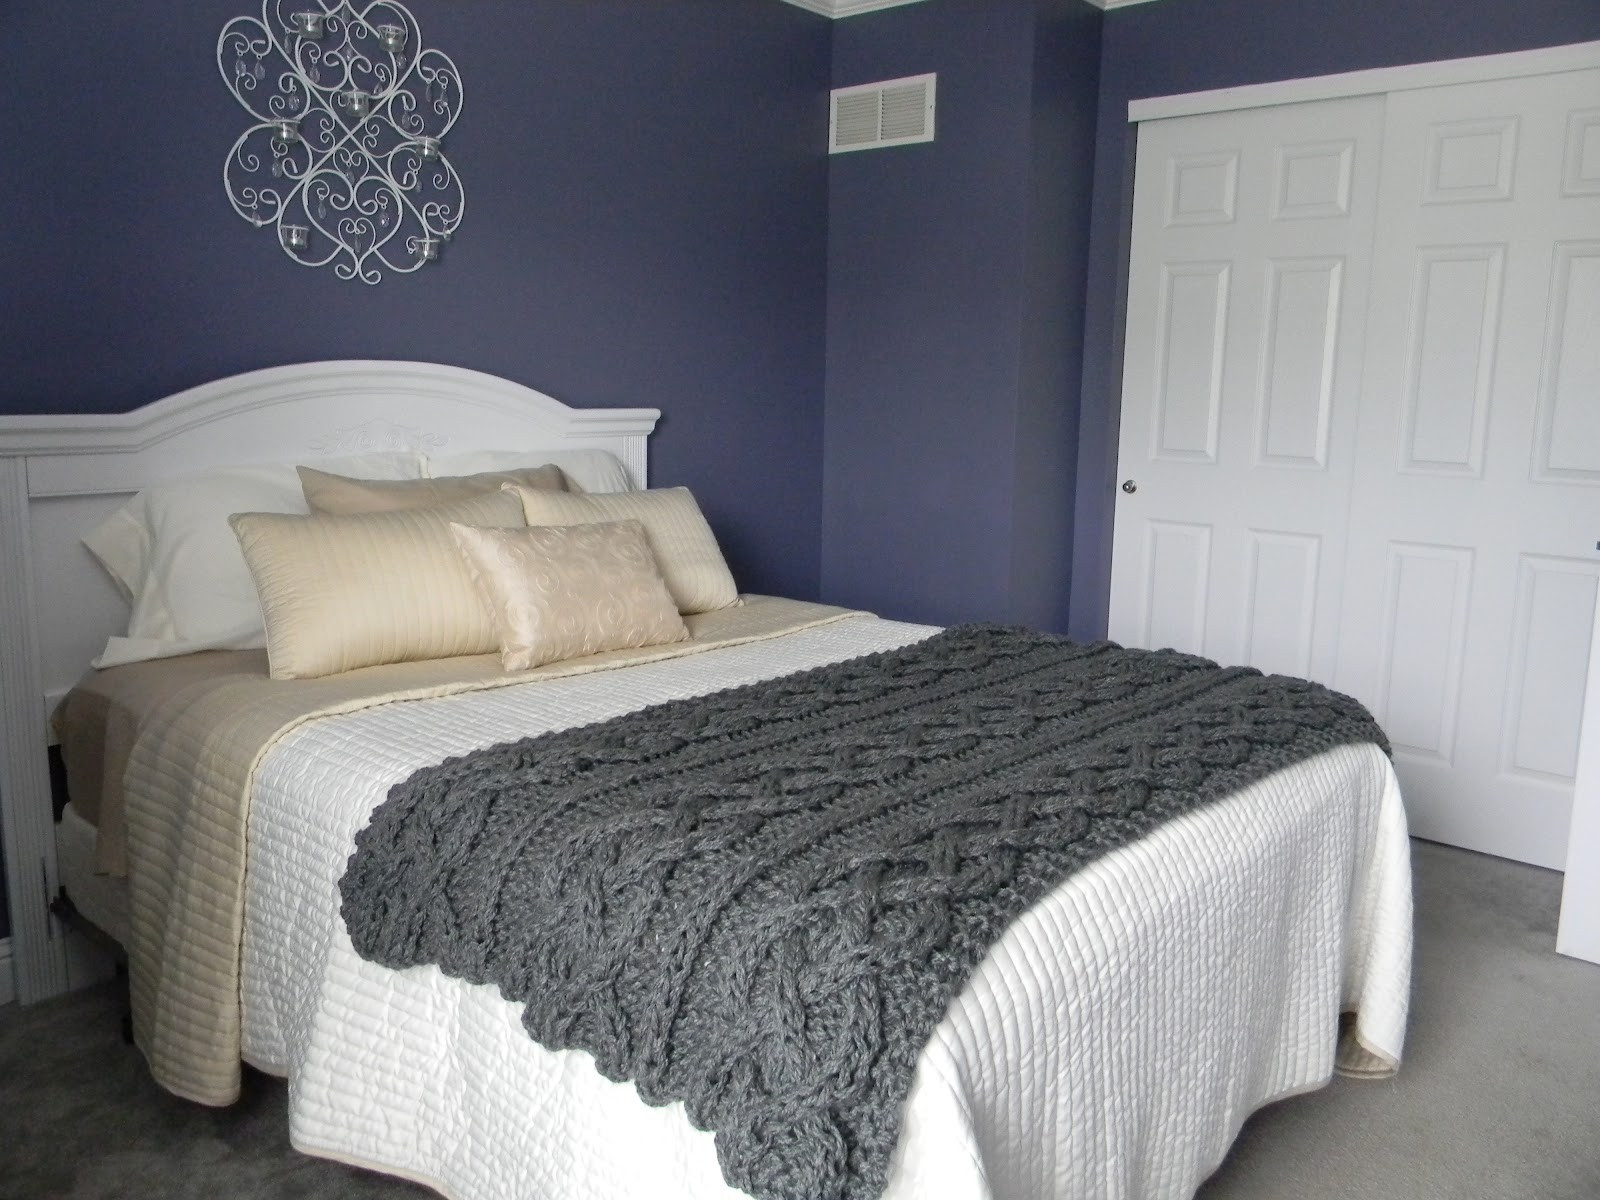 Large Knit Blanket Luxury Chunky Knit Blanket Pattern Of New 40 Images Large Knit Blanket